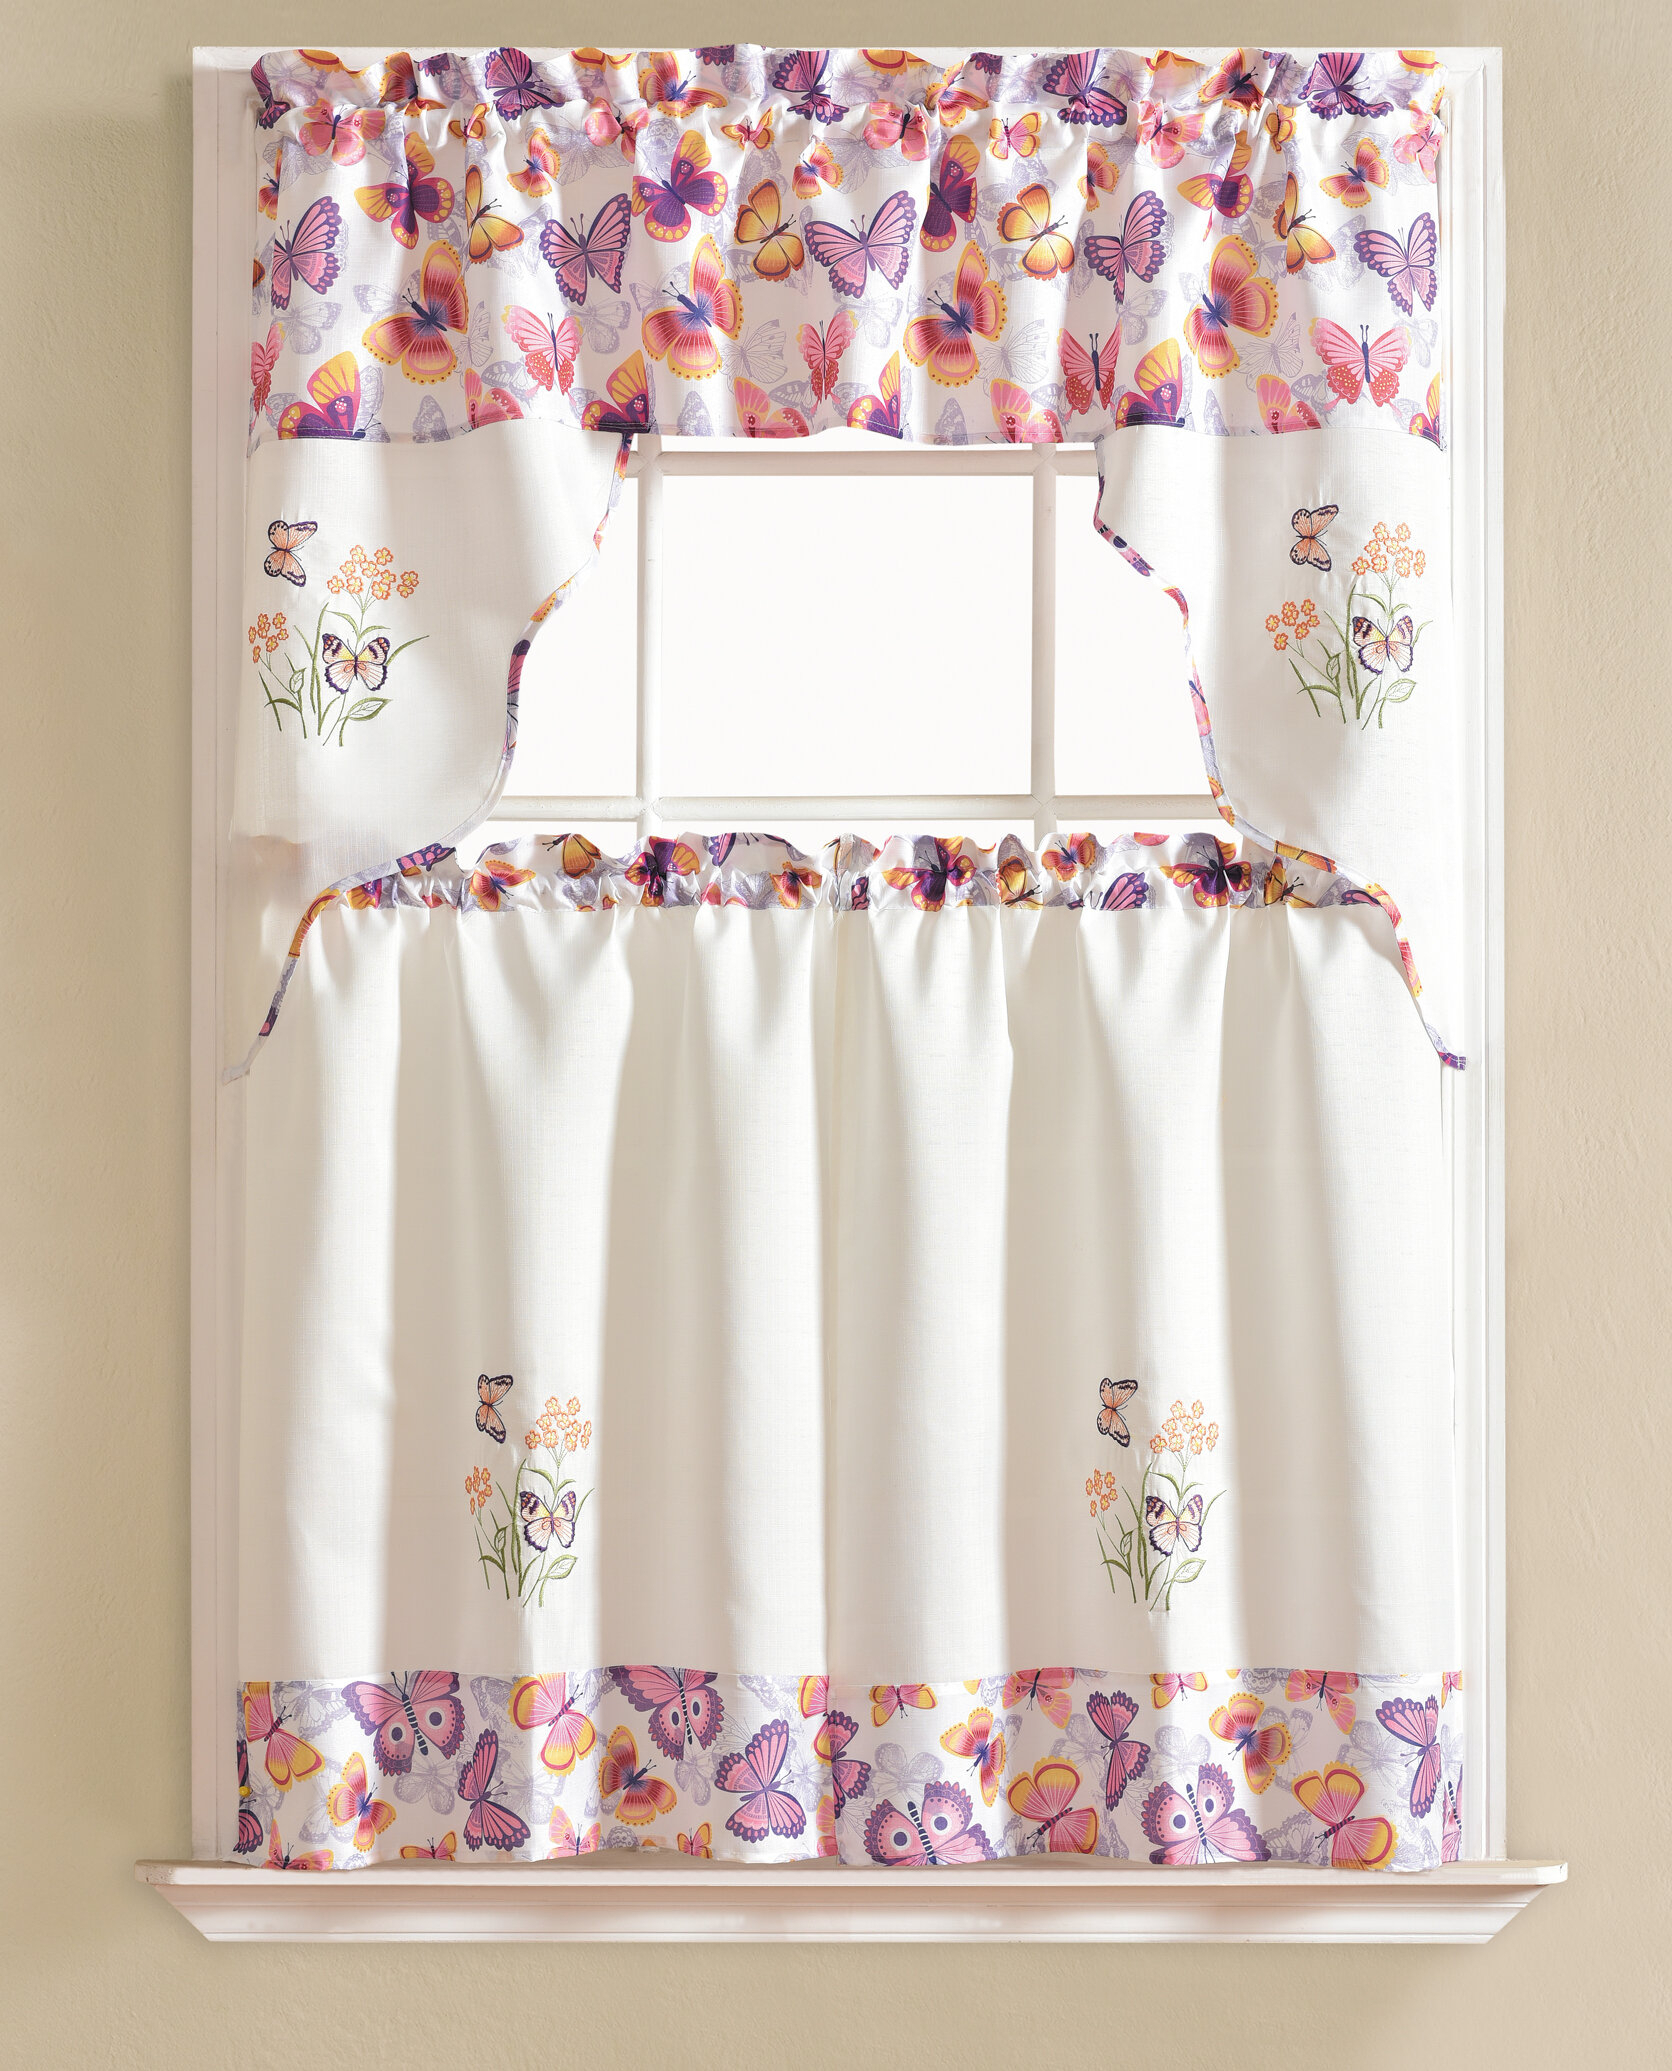 "Gironde Butterfly 60"" Cafe Curtain Regarding Window Curtains Sets With Colorful Marketplace Vegetable And Sunflower Print (View 11 of 20)"